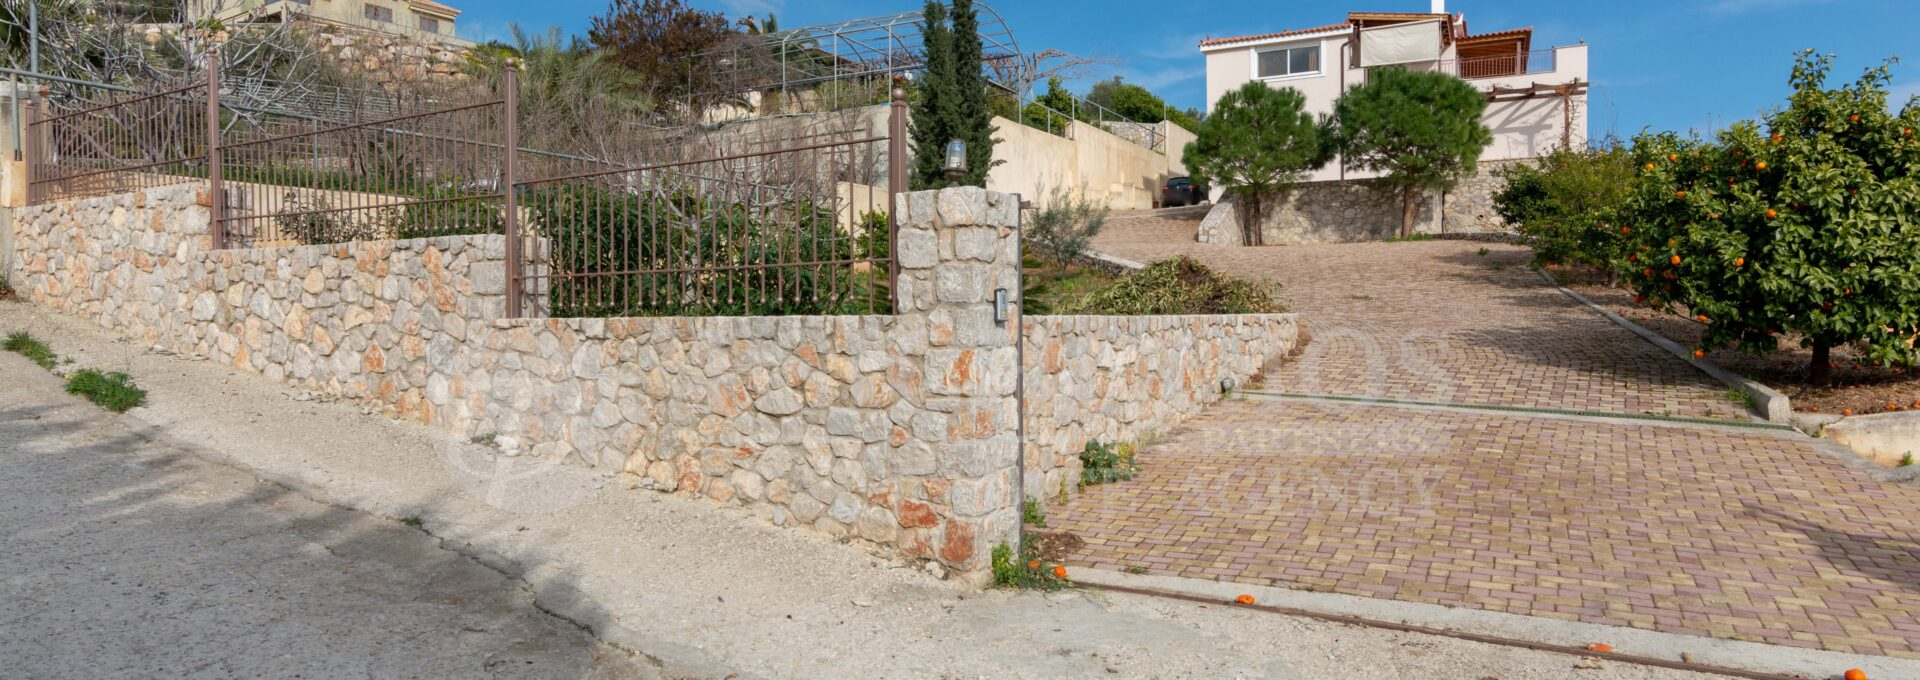 for_sale_house_107_square_meters_3_bedrooms_sea_view_ermioni_greece 1 1 (43)